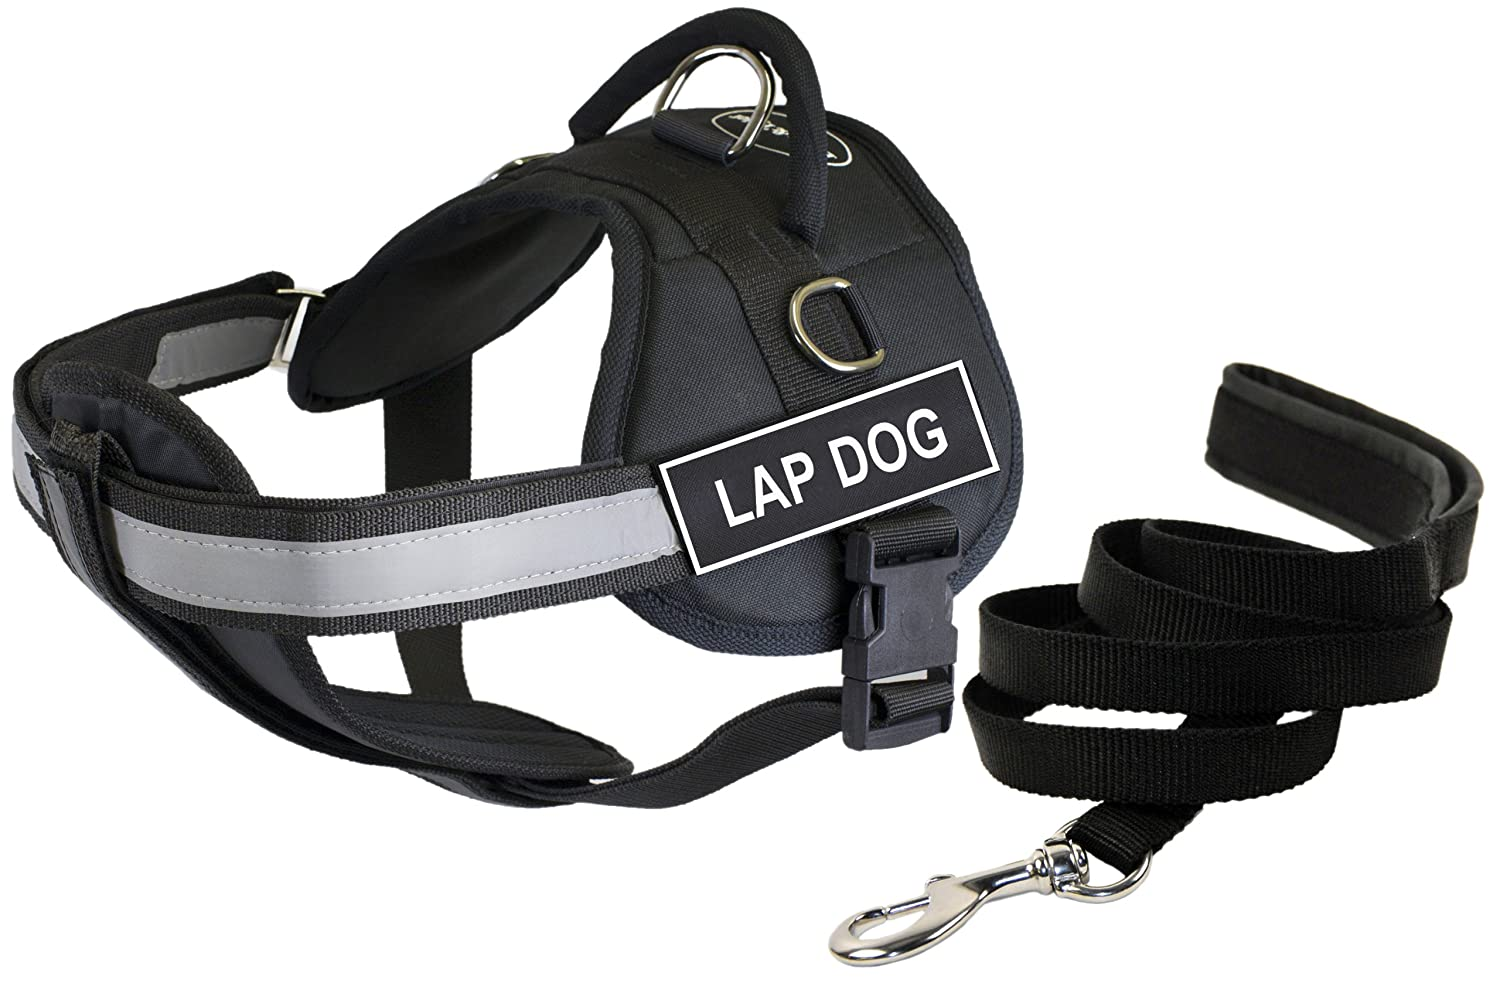 Dean & Tyler's DT Works Lap Dog  Harness with Chest Padding, Large, and 6 ft Padded Puppy Leash.